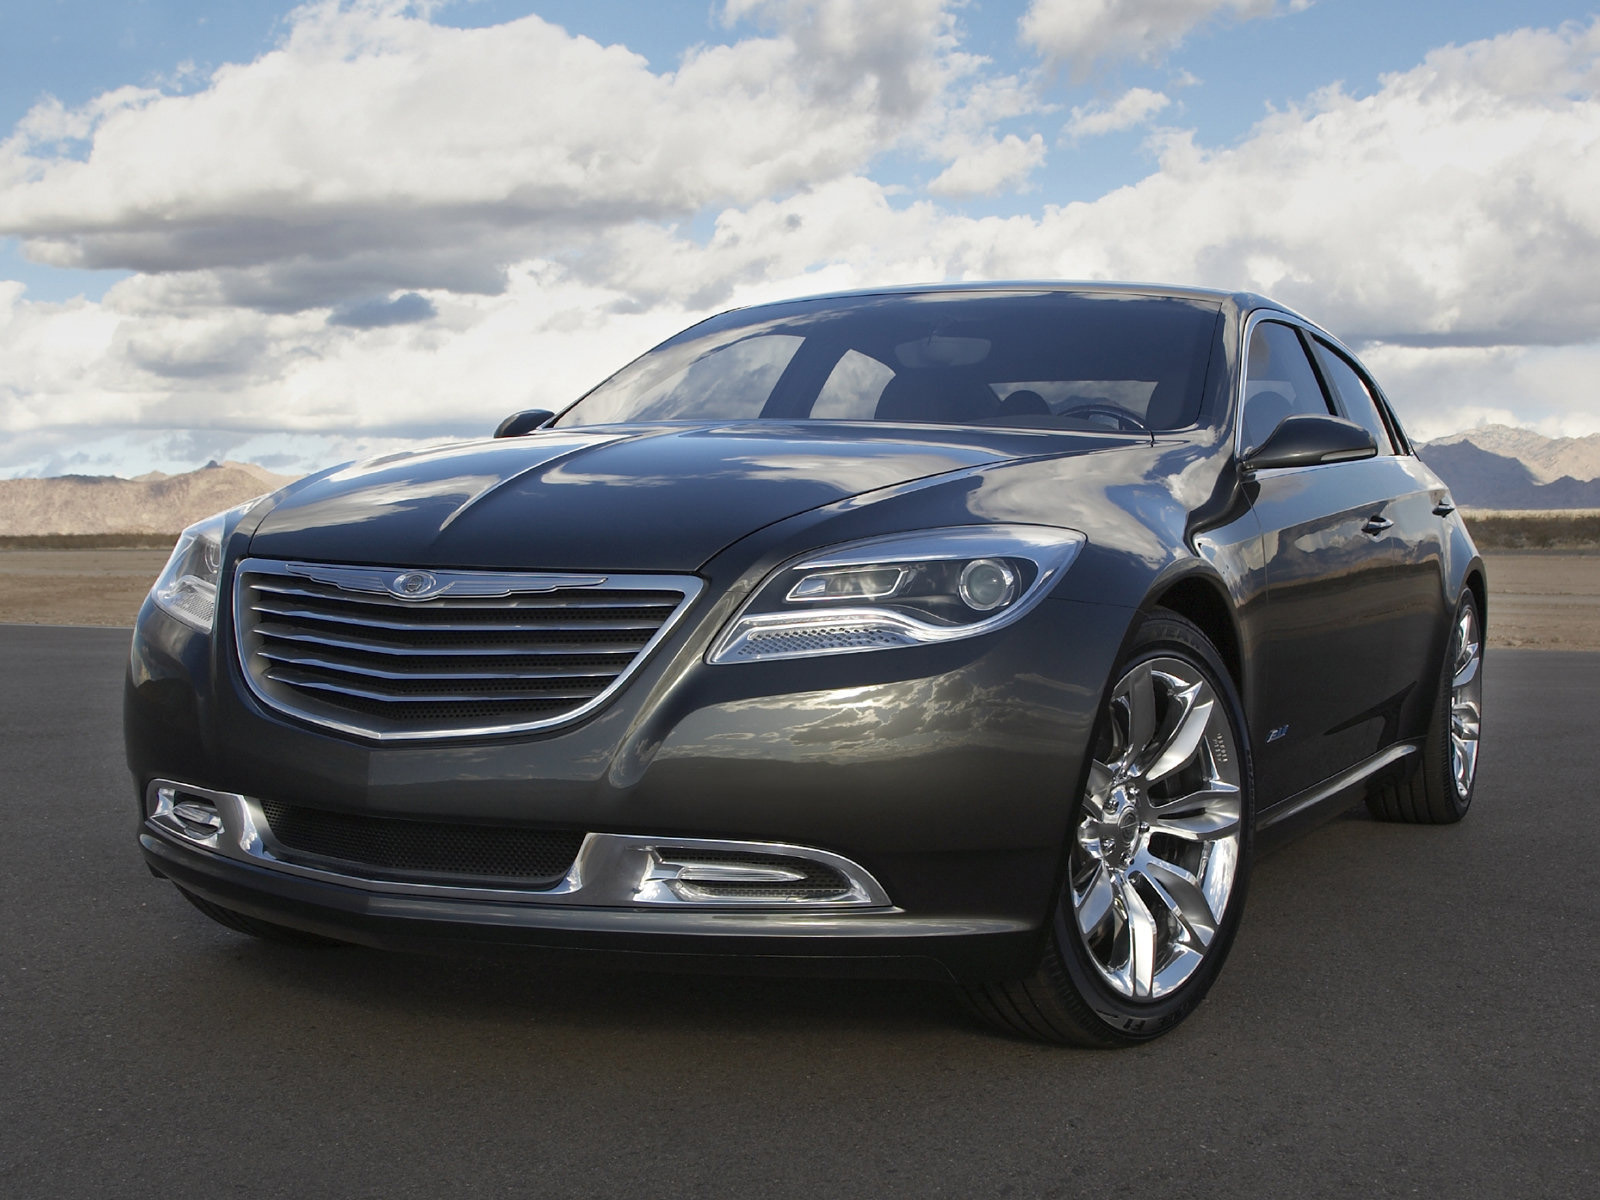 Chrysler 200 Wallpaper 1600x1200